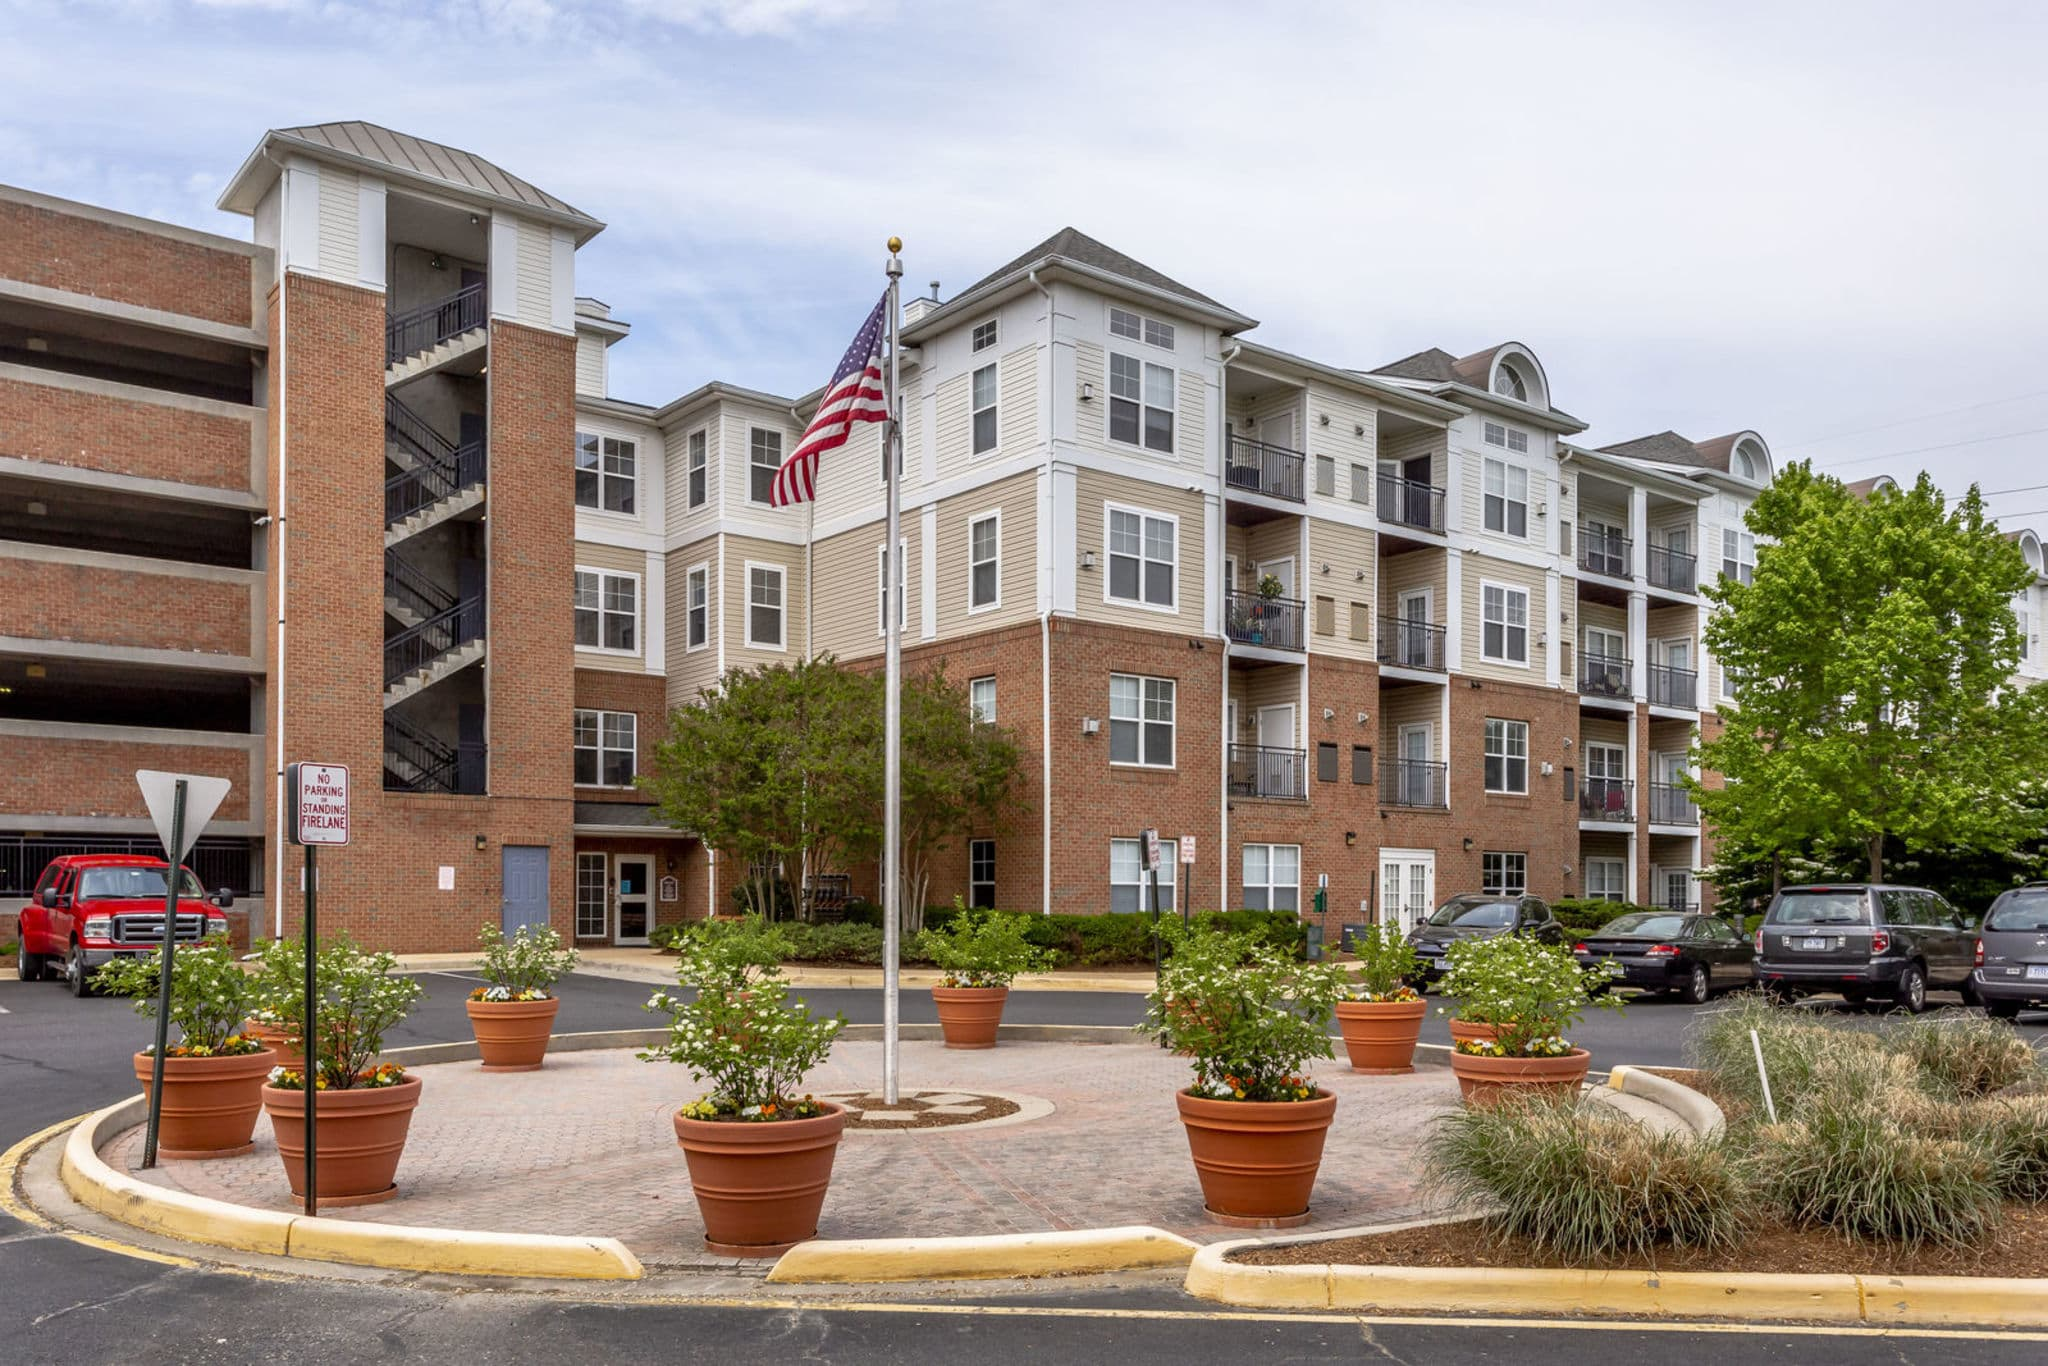 Condo that is for sale in Chantilly Virginia